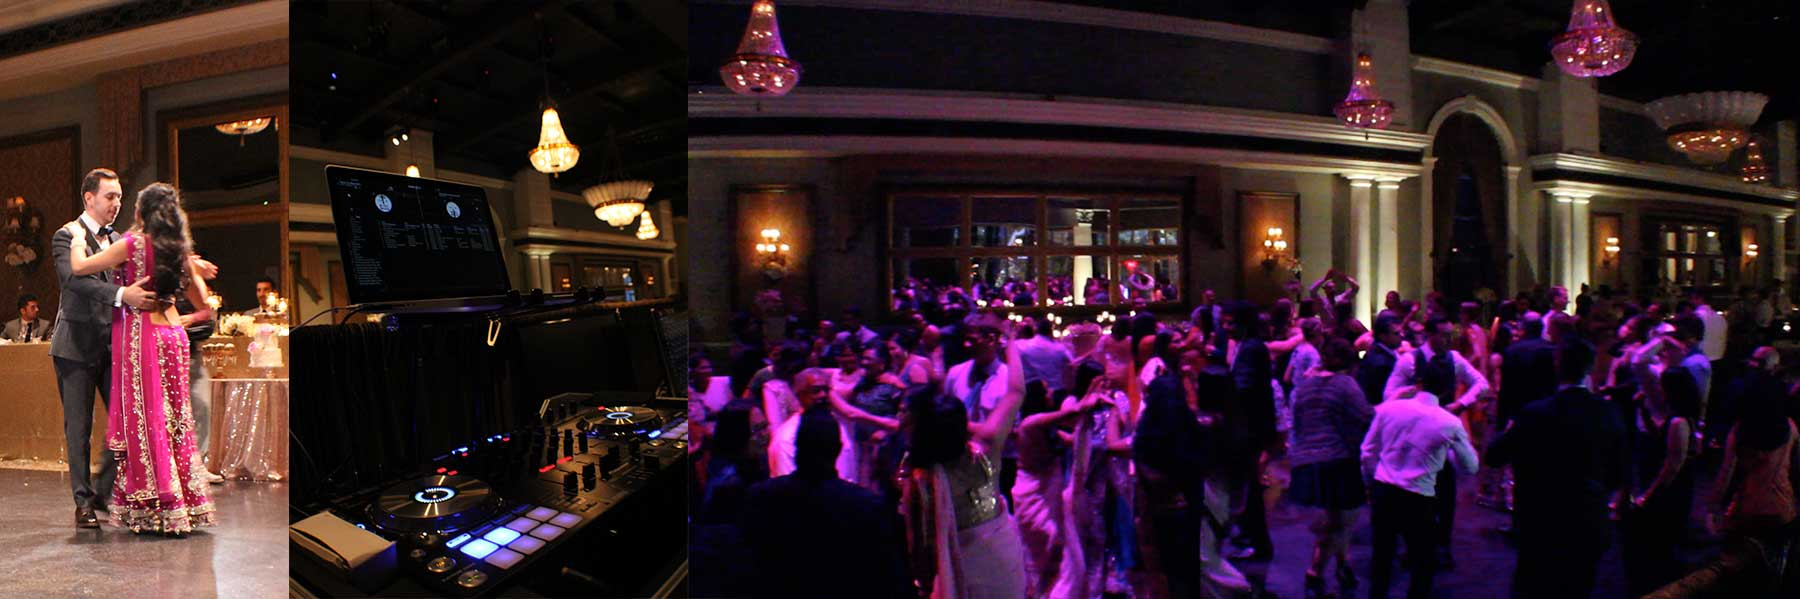 Wedding-DJ-Services-Liberty-Grand-Toronto---Governers-Room